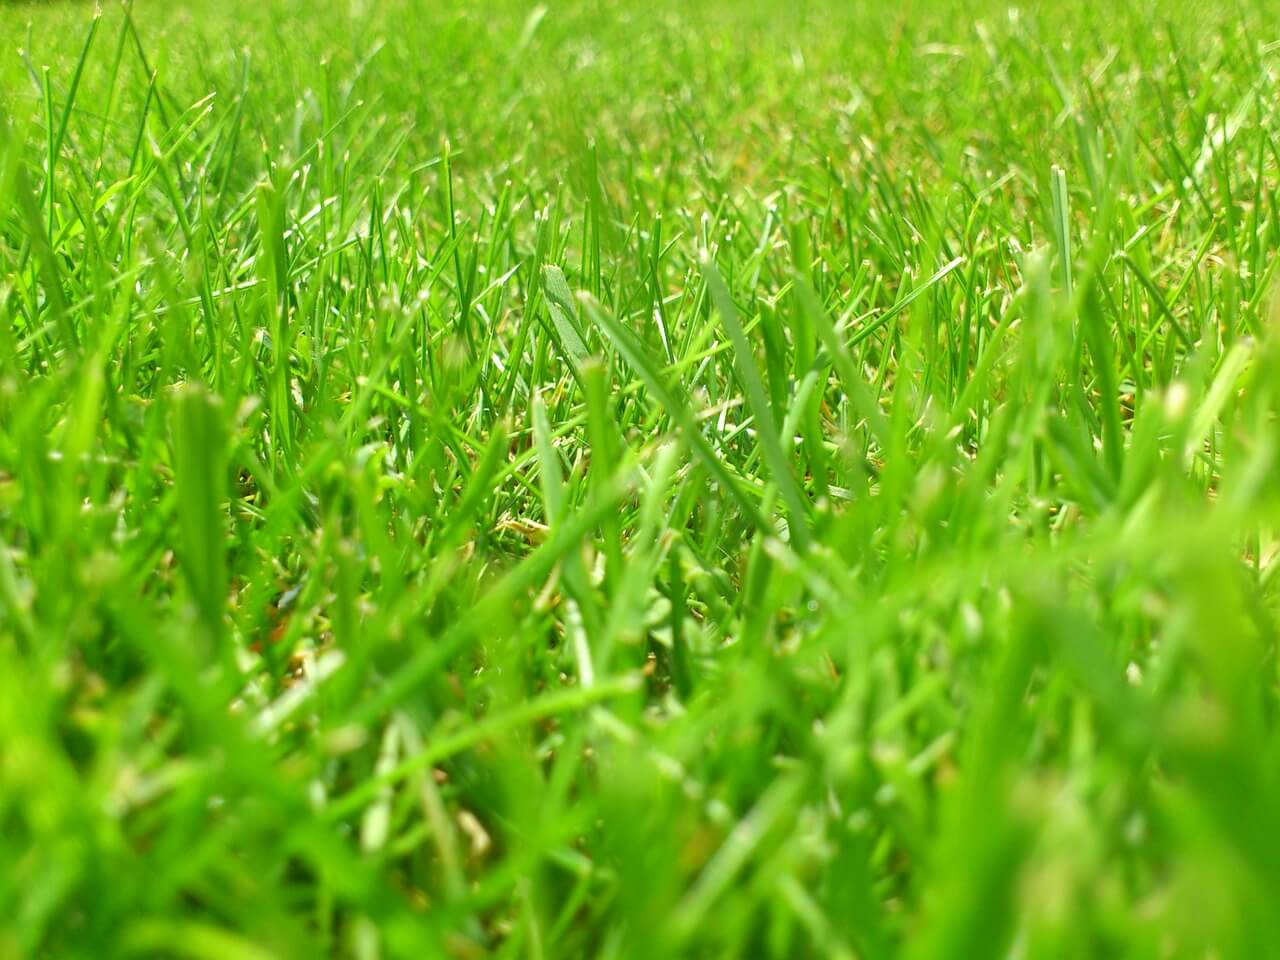 Types of Lawn Grass